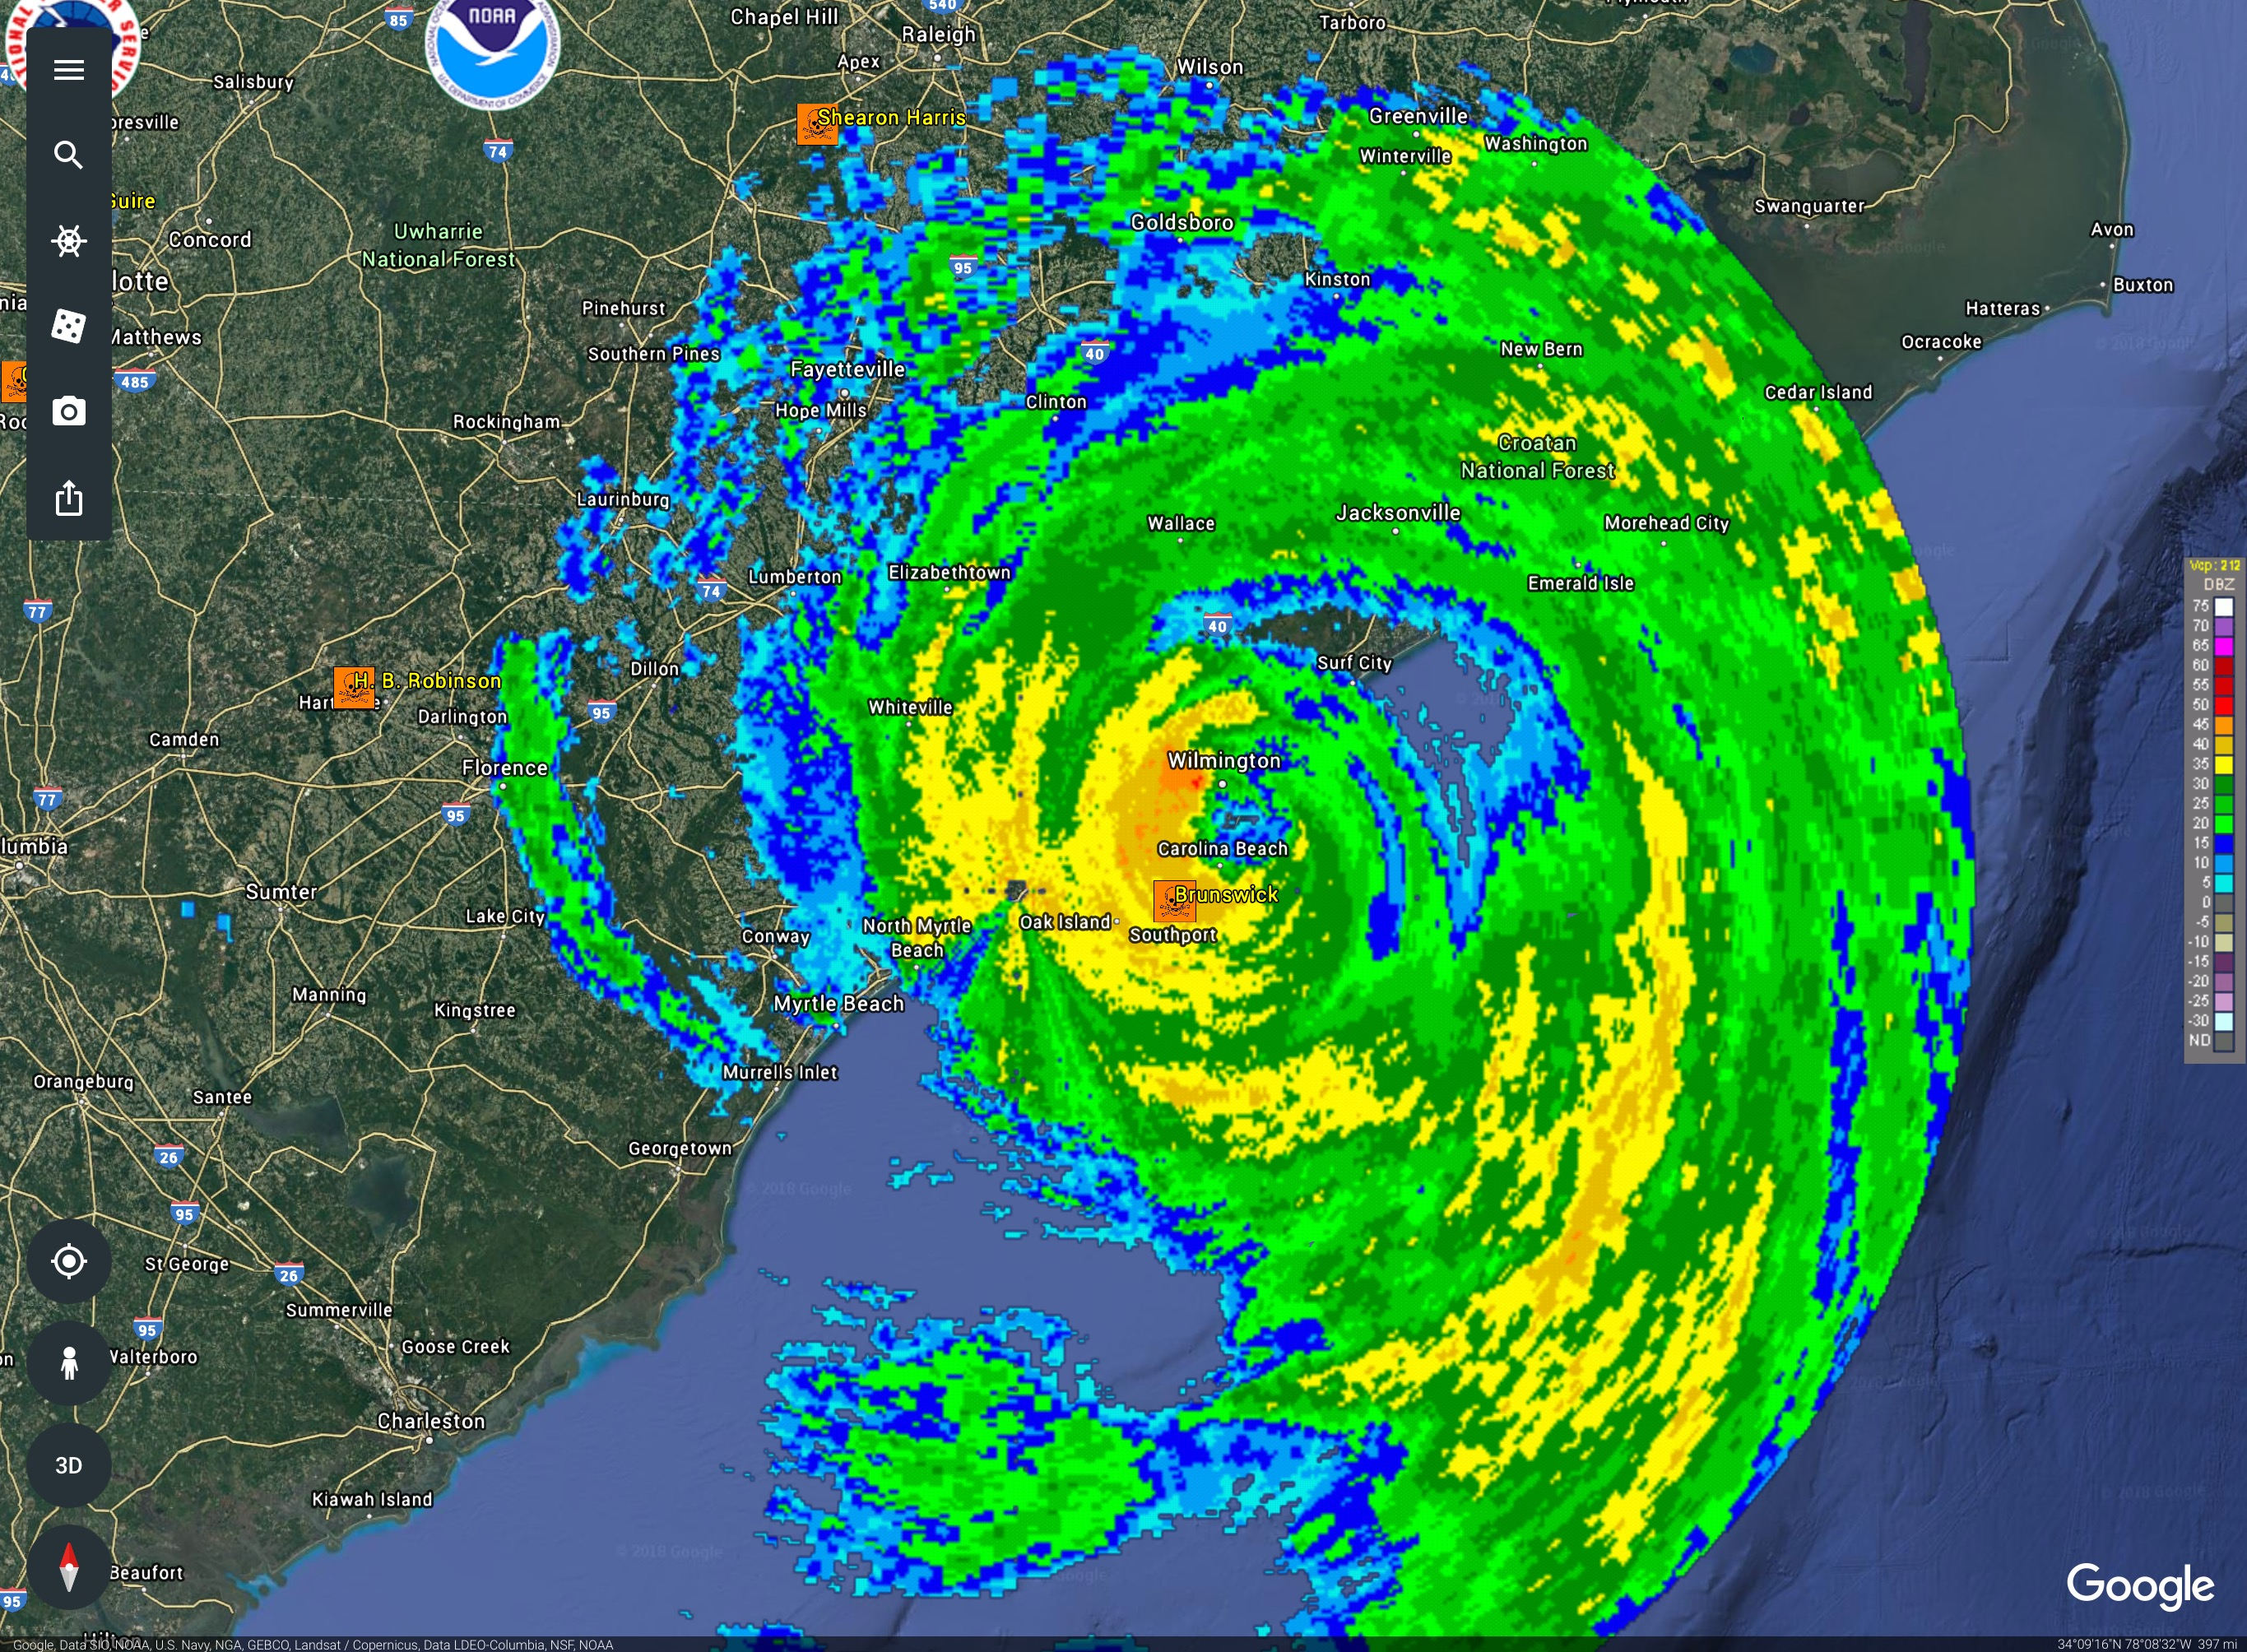 Hurricane Florence Landfall Radar With Location Of Nuclear Power